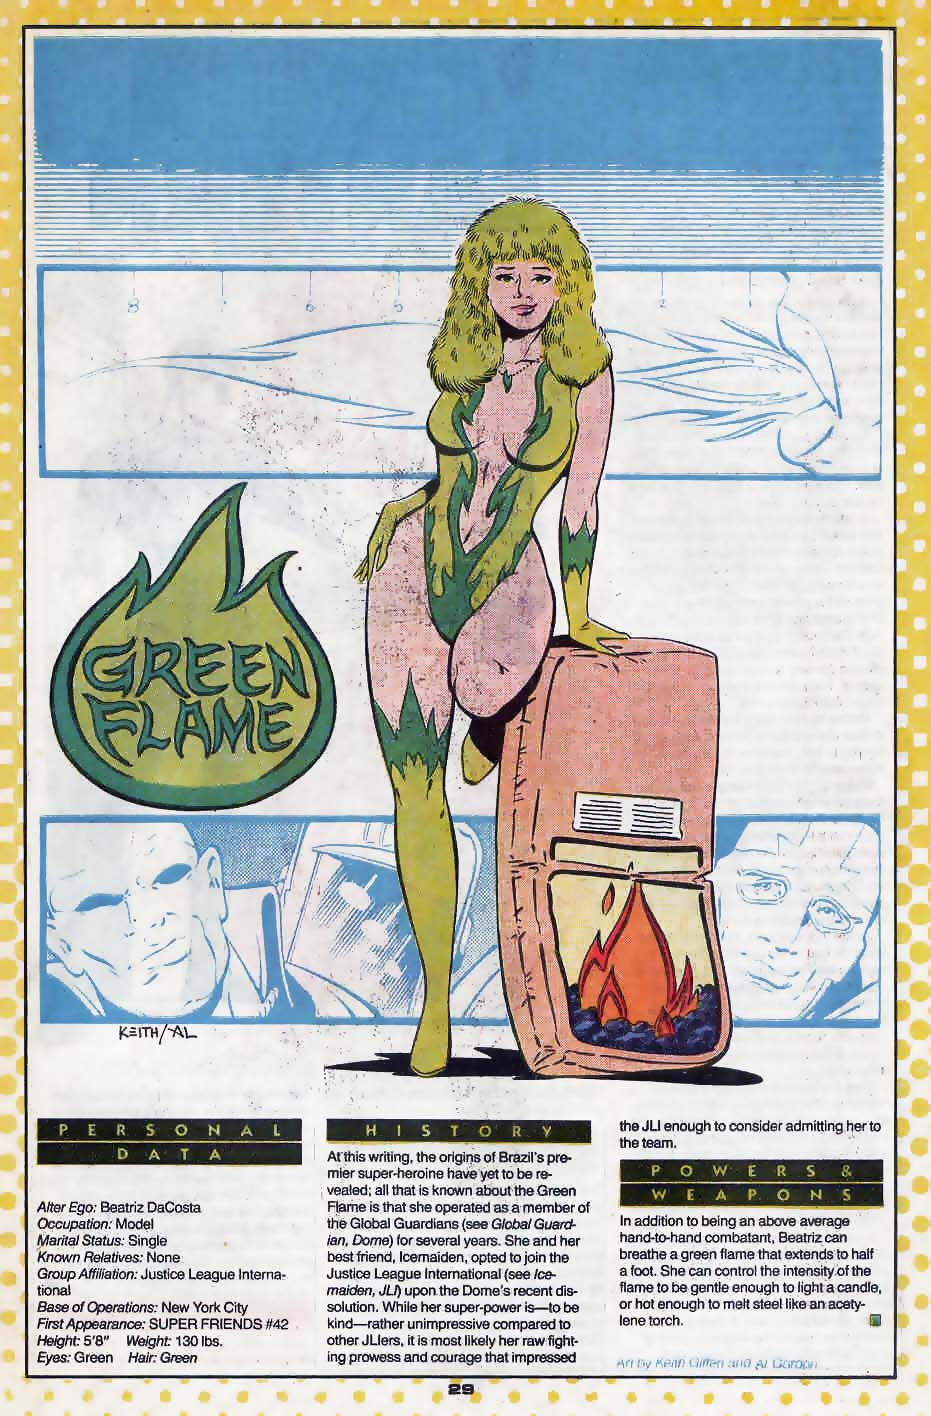 Green Flame by Keith Giffen and Al Gordon